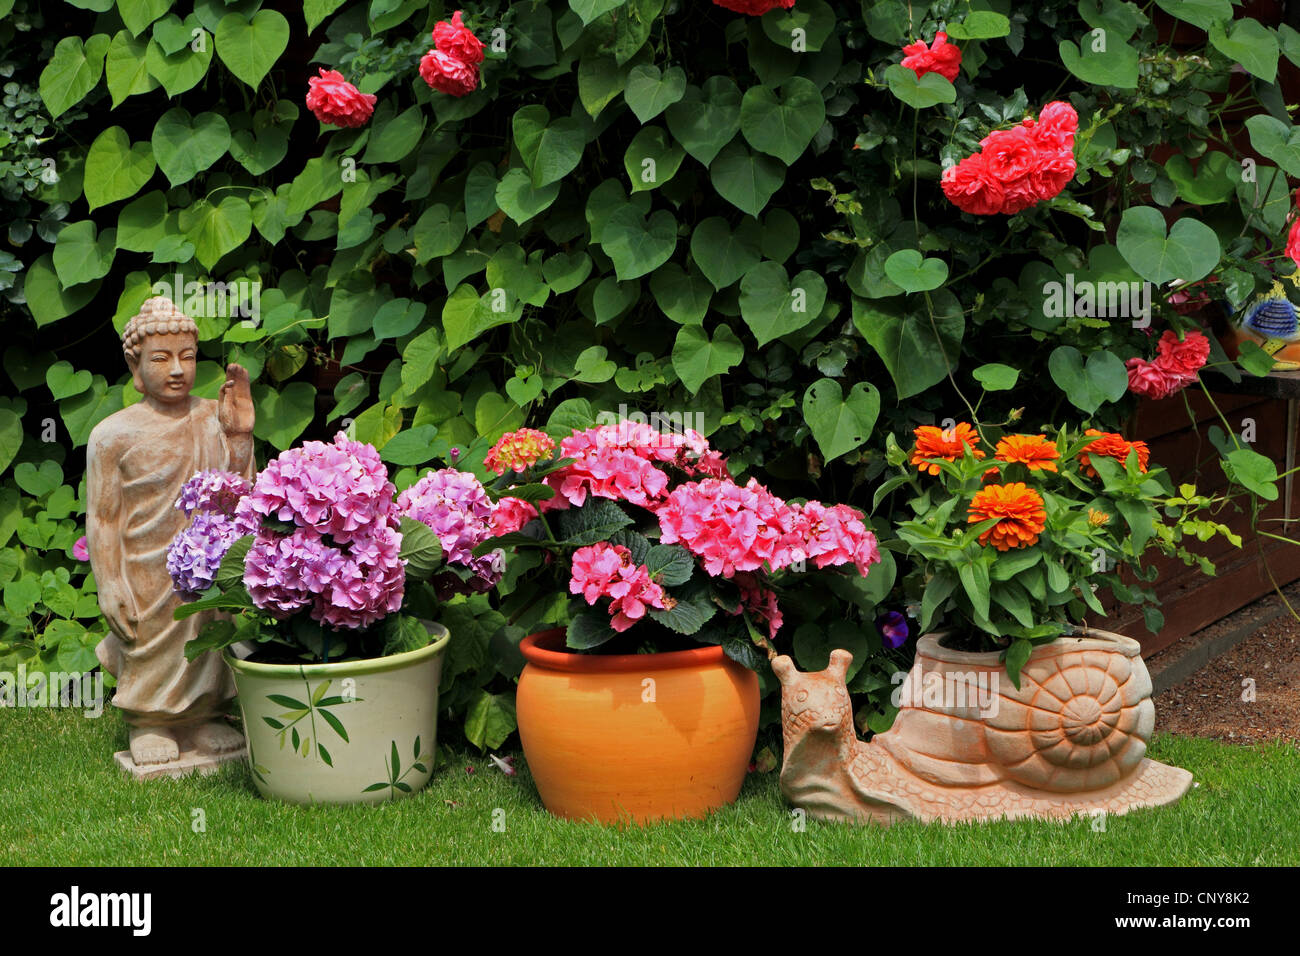 Summer House With Flowers And Garden Figures, Germany   Stock Image